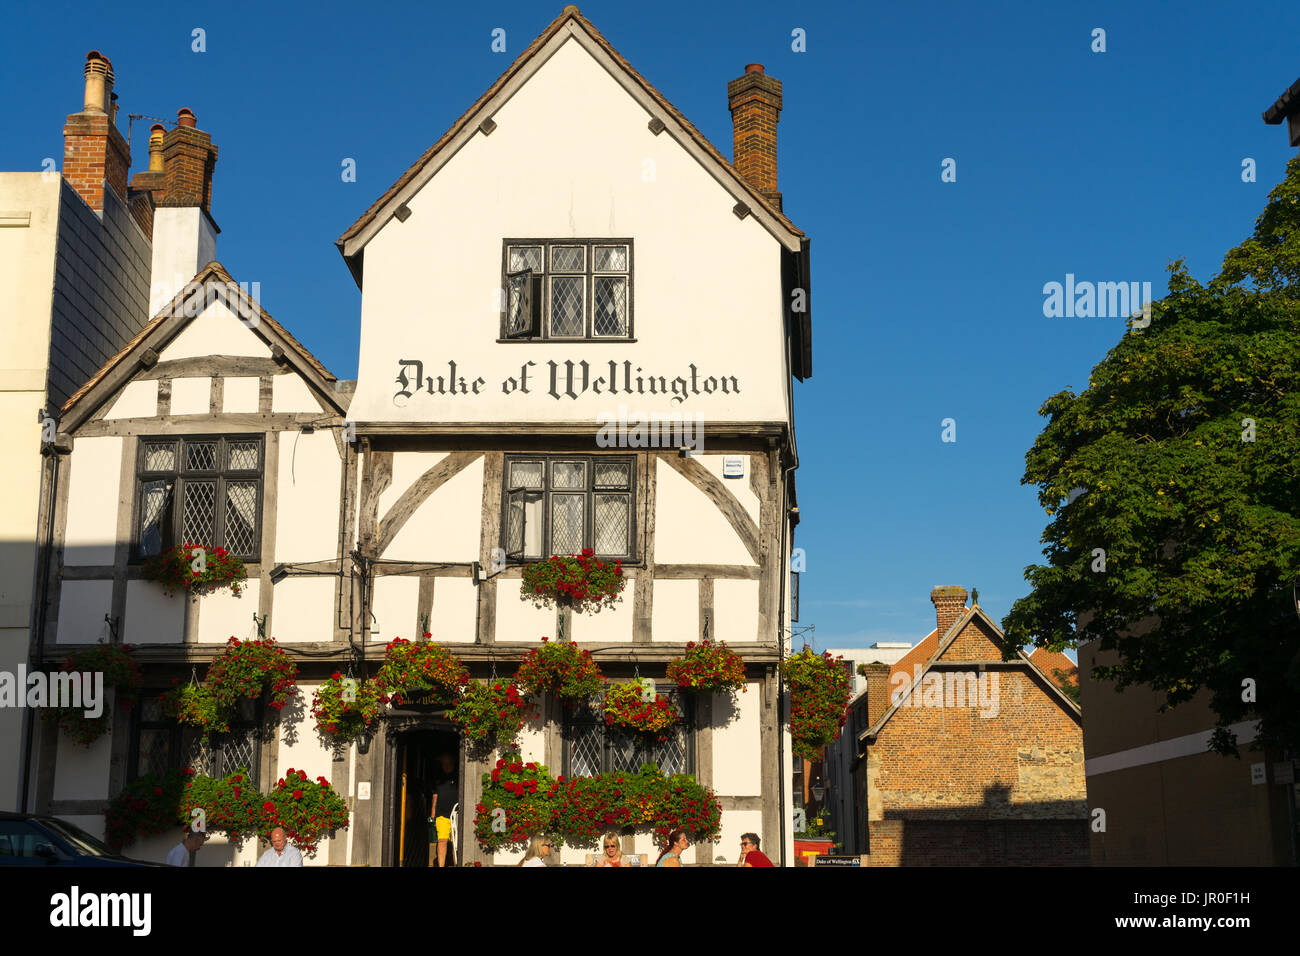 The Duke of Wellington pub in the historic Old Town part of Southampton, England, UK - Stock Image